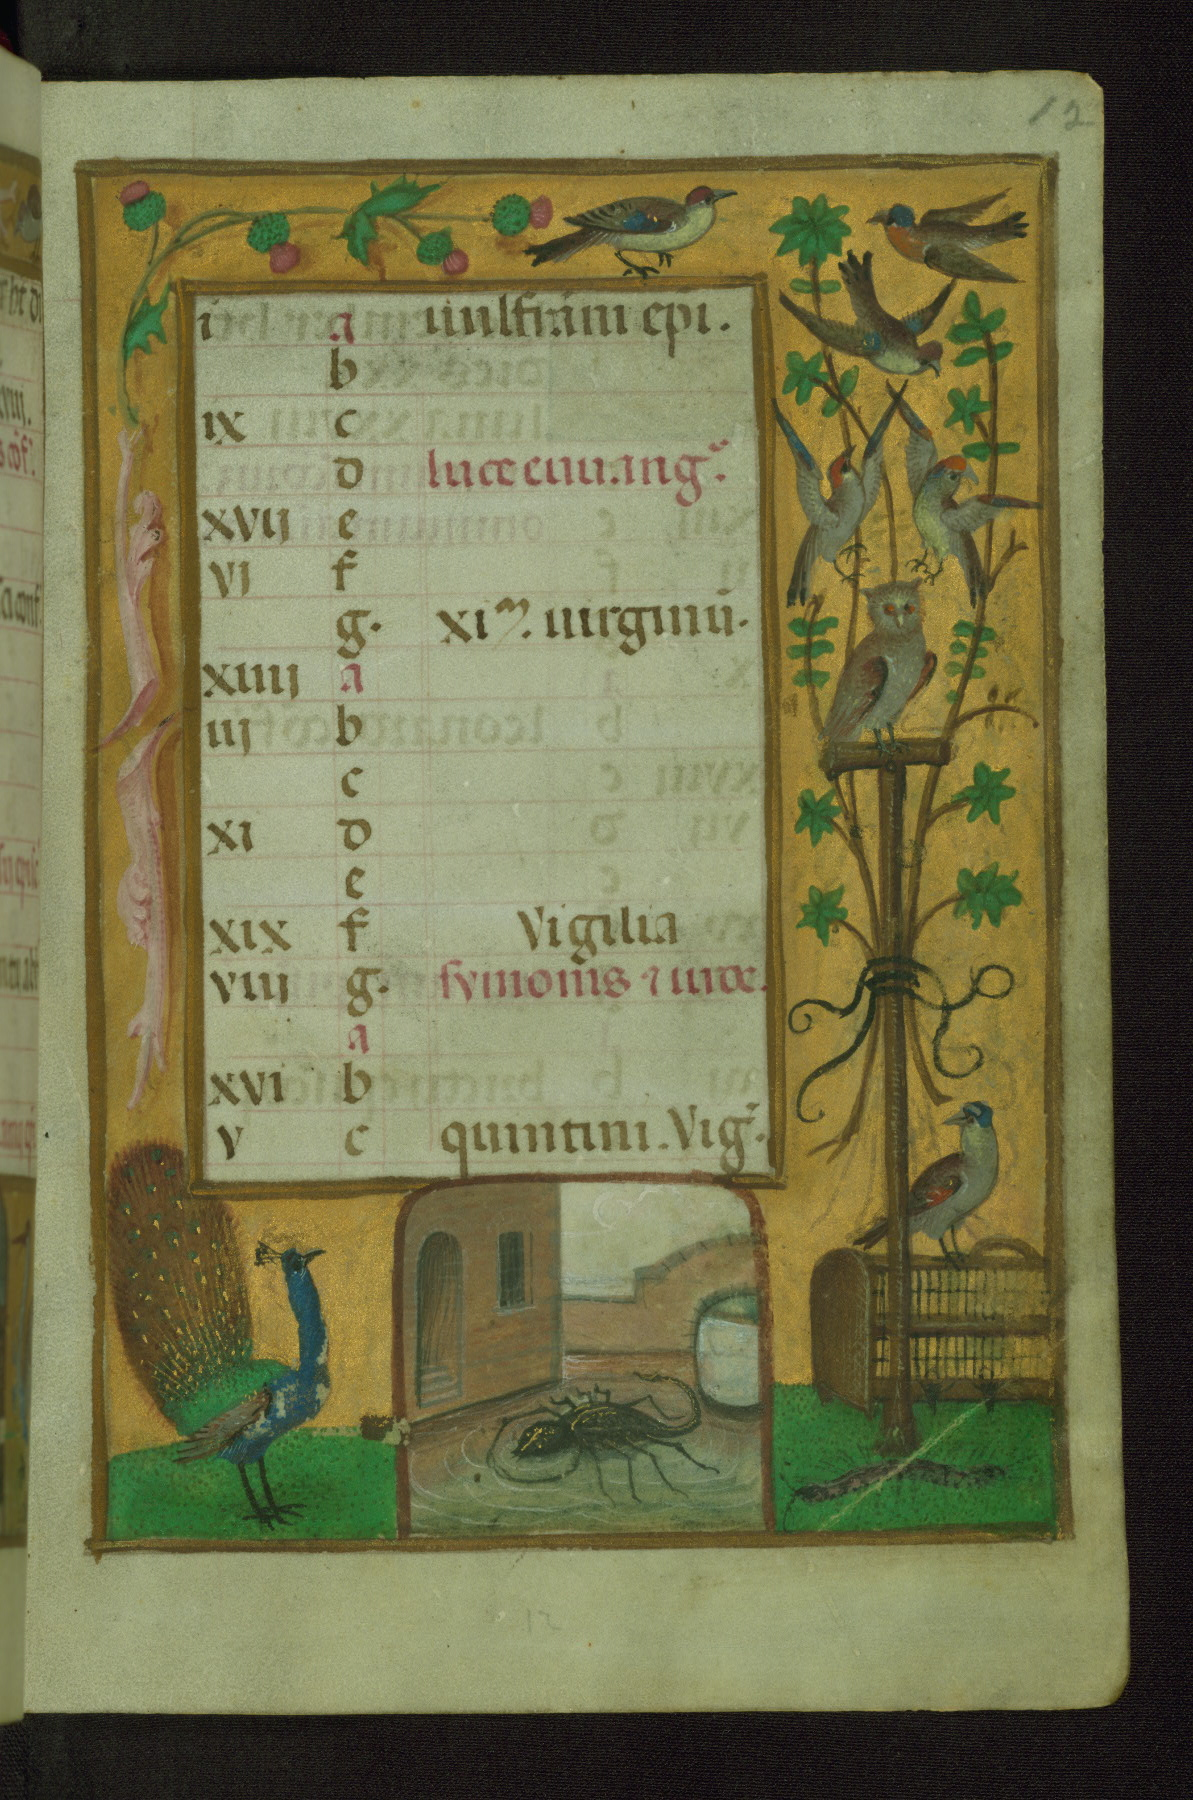 Book of Hours 1500 ca Ms. W.427 Walters Art Museum Baltimore fol. 12r (octobre)